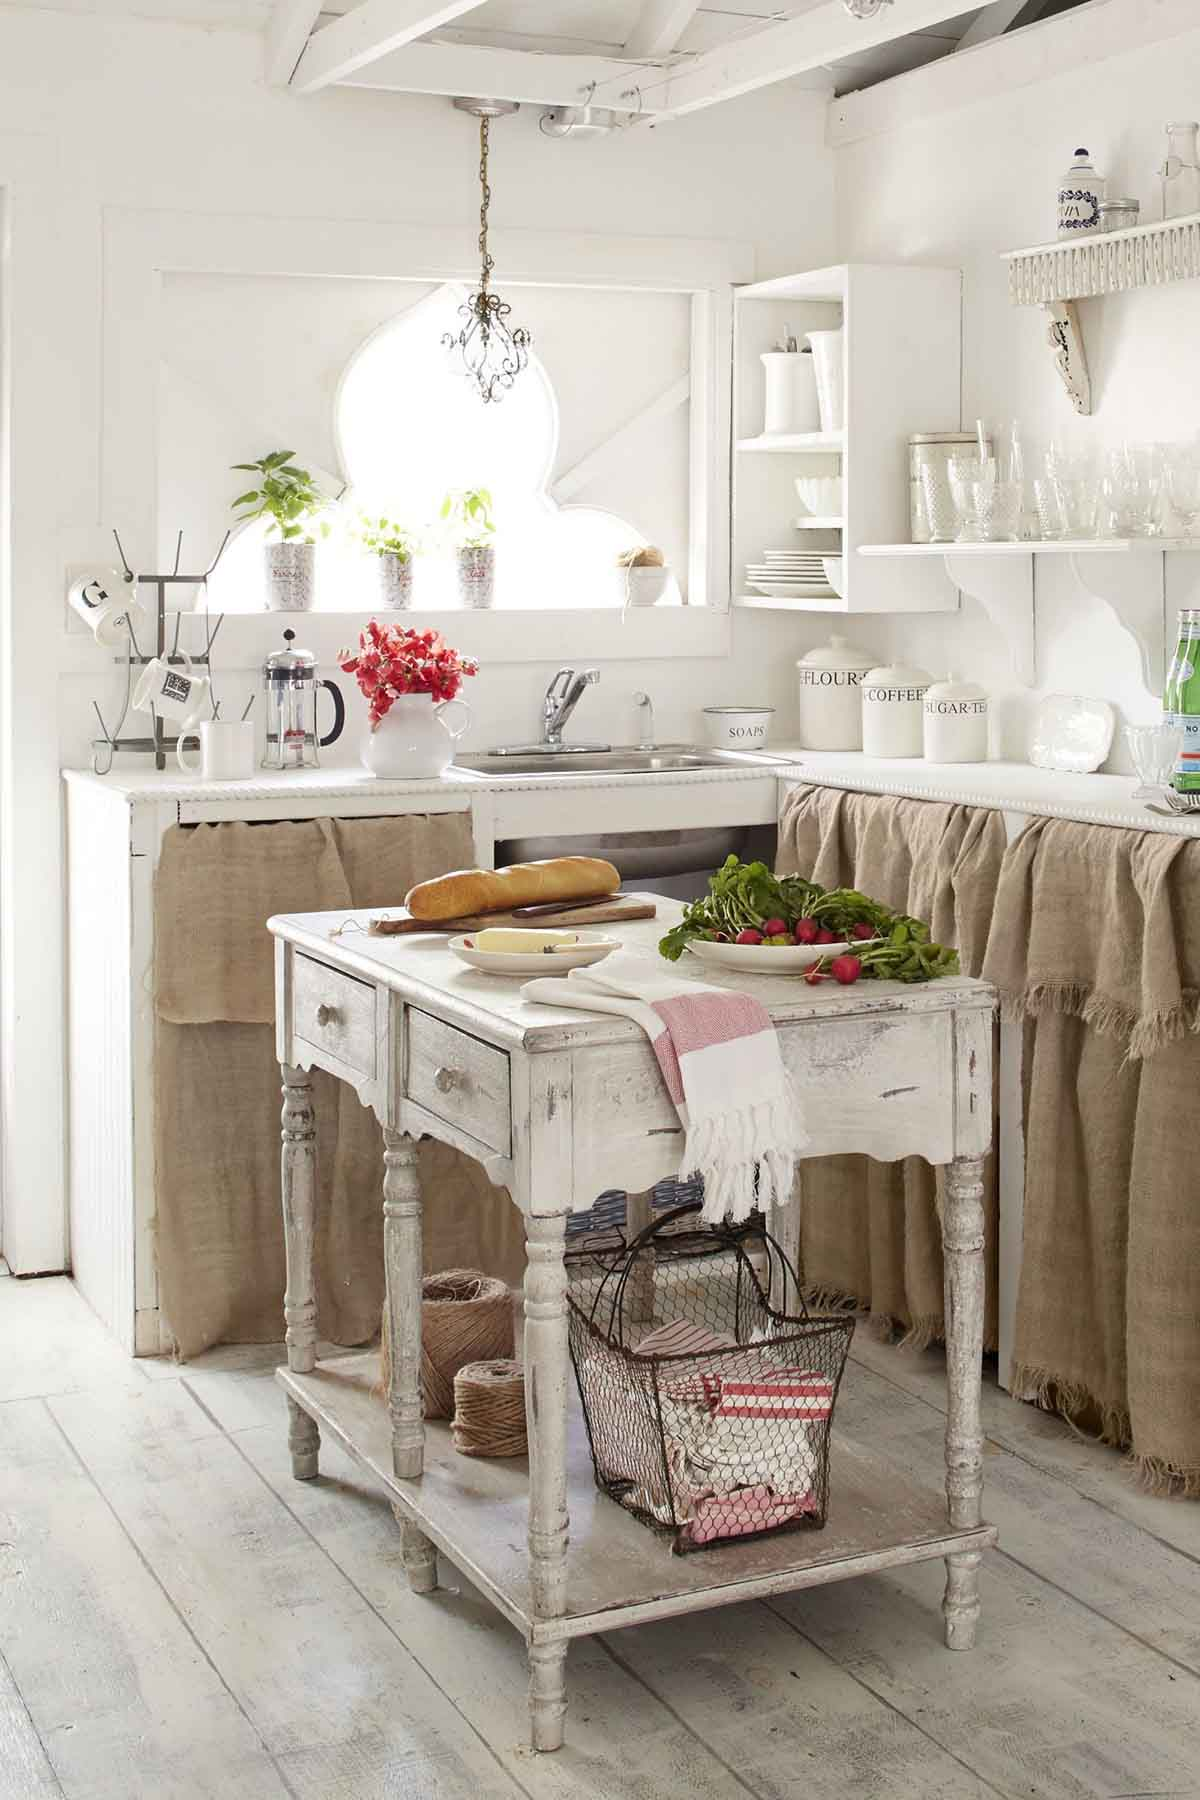 34 Best Vintage Kitchen Decor Ideas and Designs for 2018 Antique Kitchen Decor Ideas on antique frames ideas, antique interior decorating ideas, antique ornaments ideas, antique kitchen flooring, antique kitchen design ideas, bedroom dresser decor ideas, antique print stock, antique rustic kitchen ideas, antique home ideas, antique dining room ideas, antique storage ideas, antique kitchen backsplash ideas, antique kitchen color ideas, antique kitchen wall decor, antique kitchen remodeling ideas, antique jewelry ideas, antique kitchen cleaning, antique kitchen tiles, antique kitchen quotes, country french decor ideas,